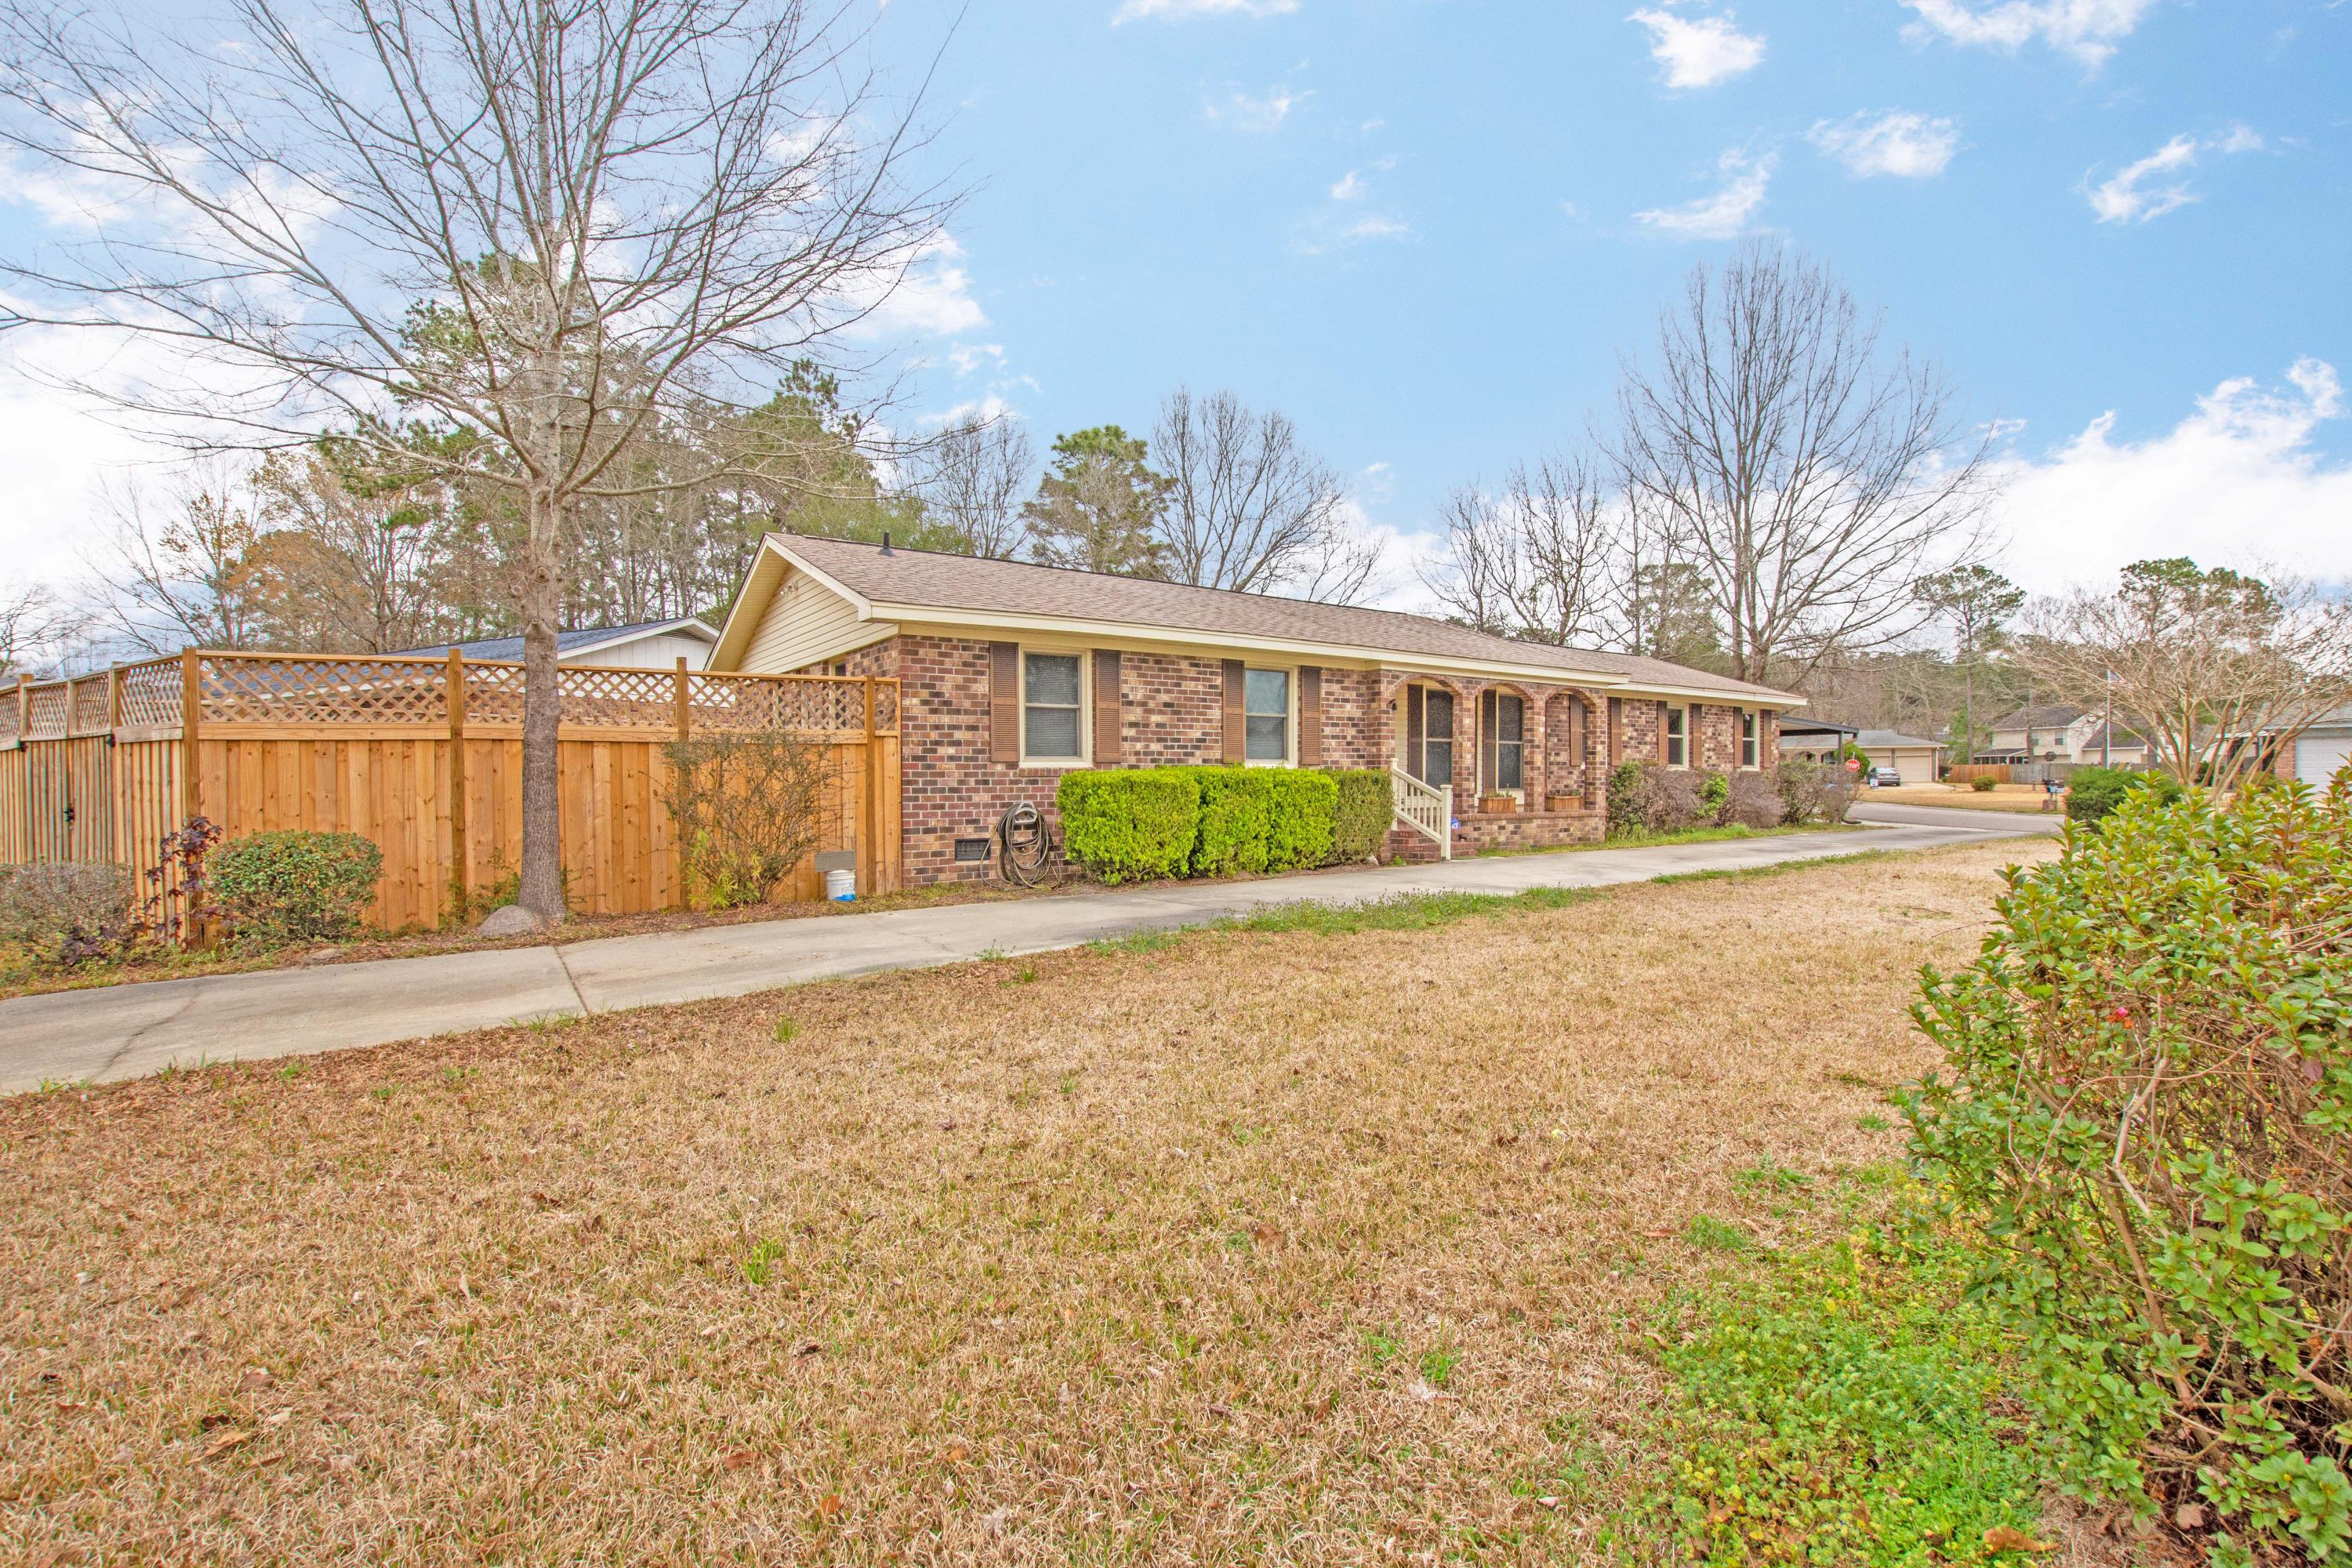 Photo of 102 Barbara Dr, Ladson, SC 29456